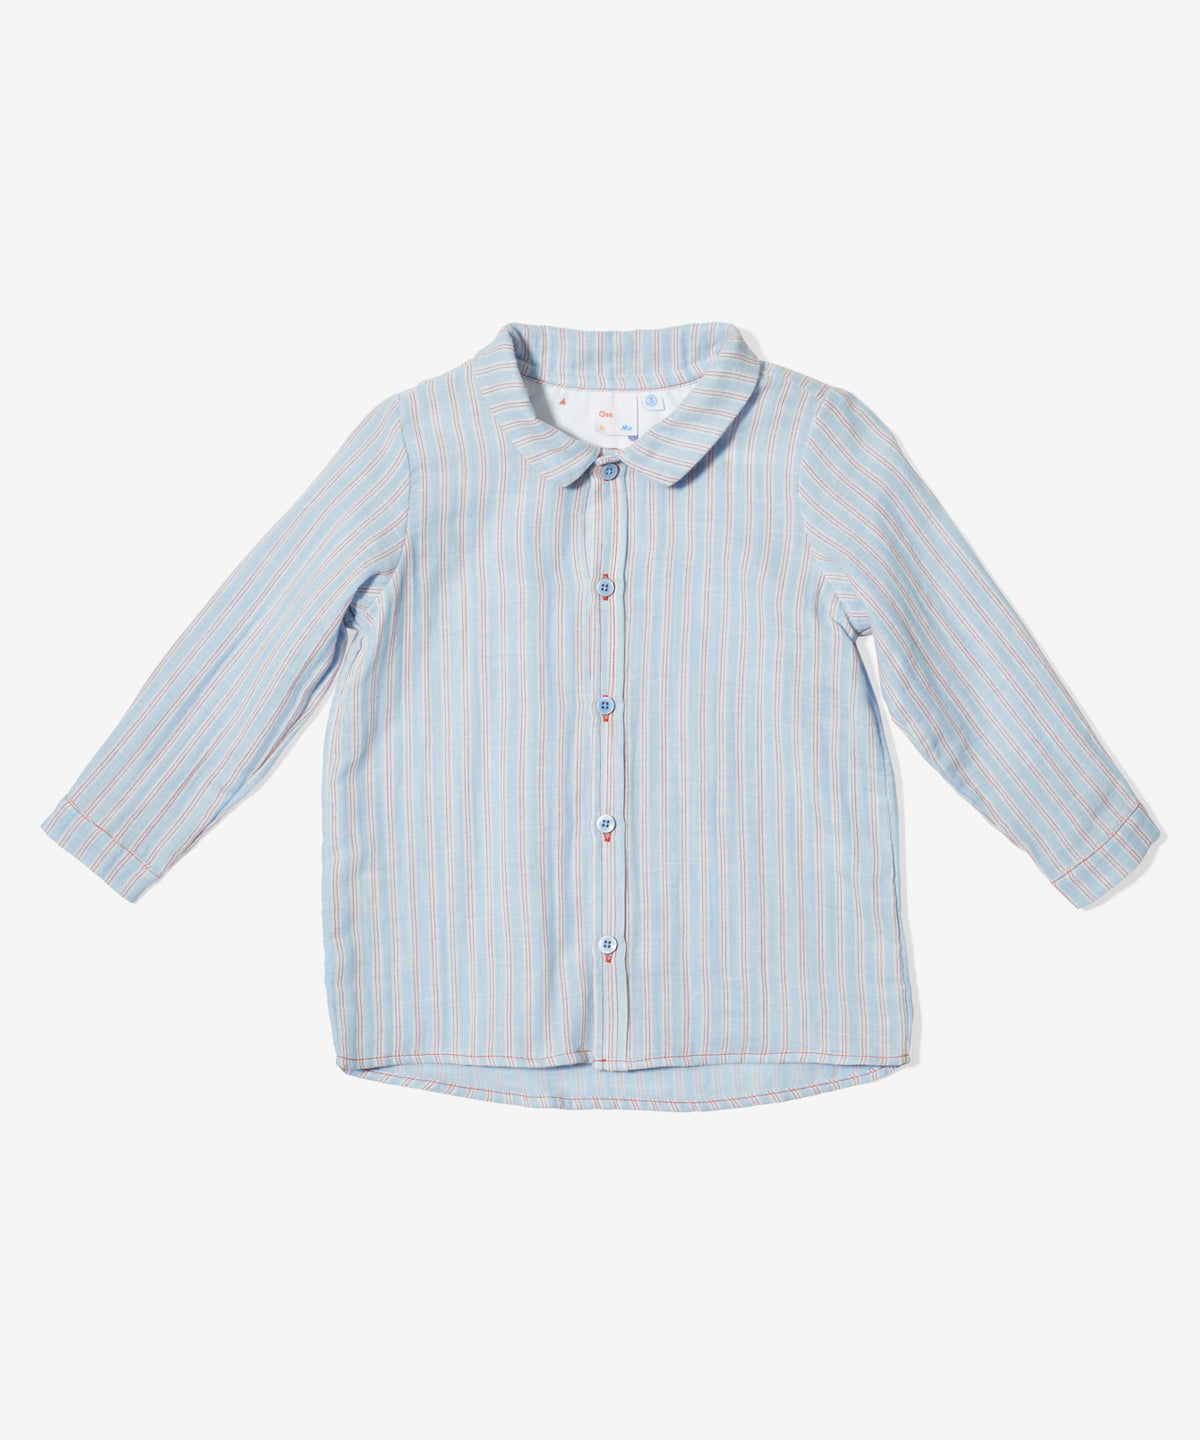 Jefferson Shirt, Signature Stripe